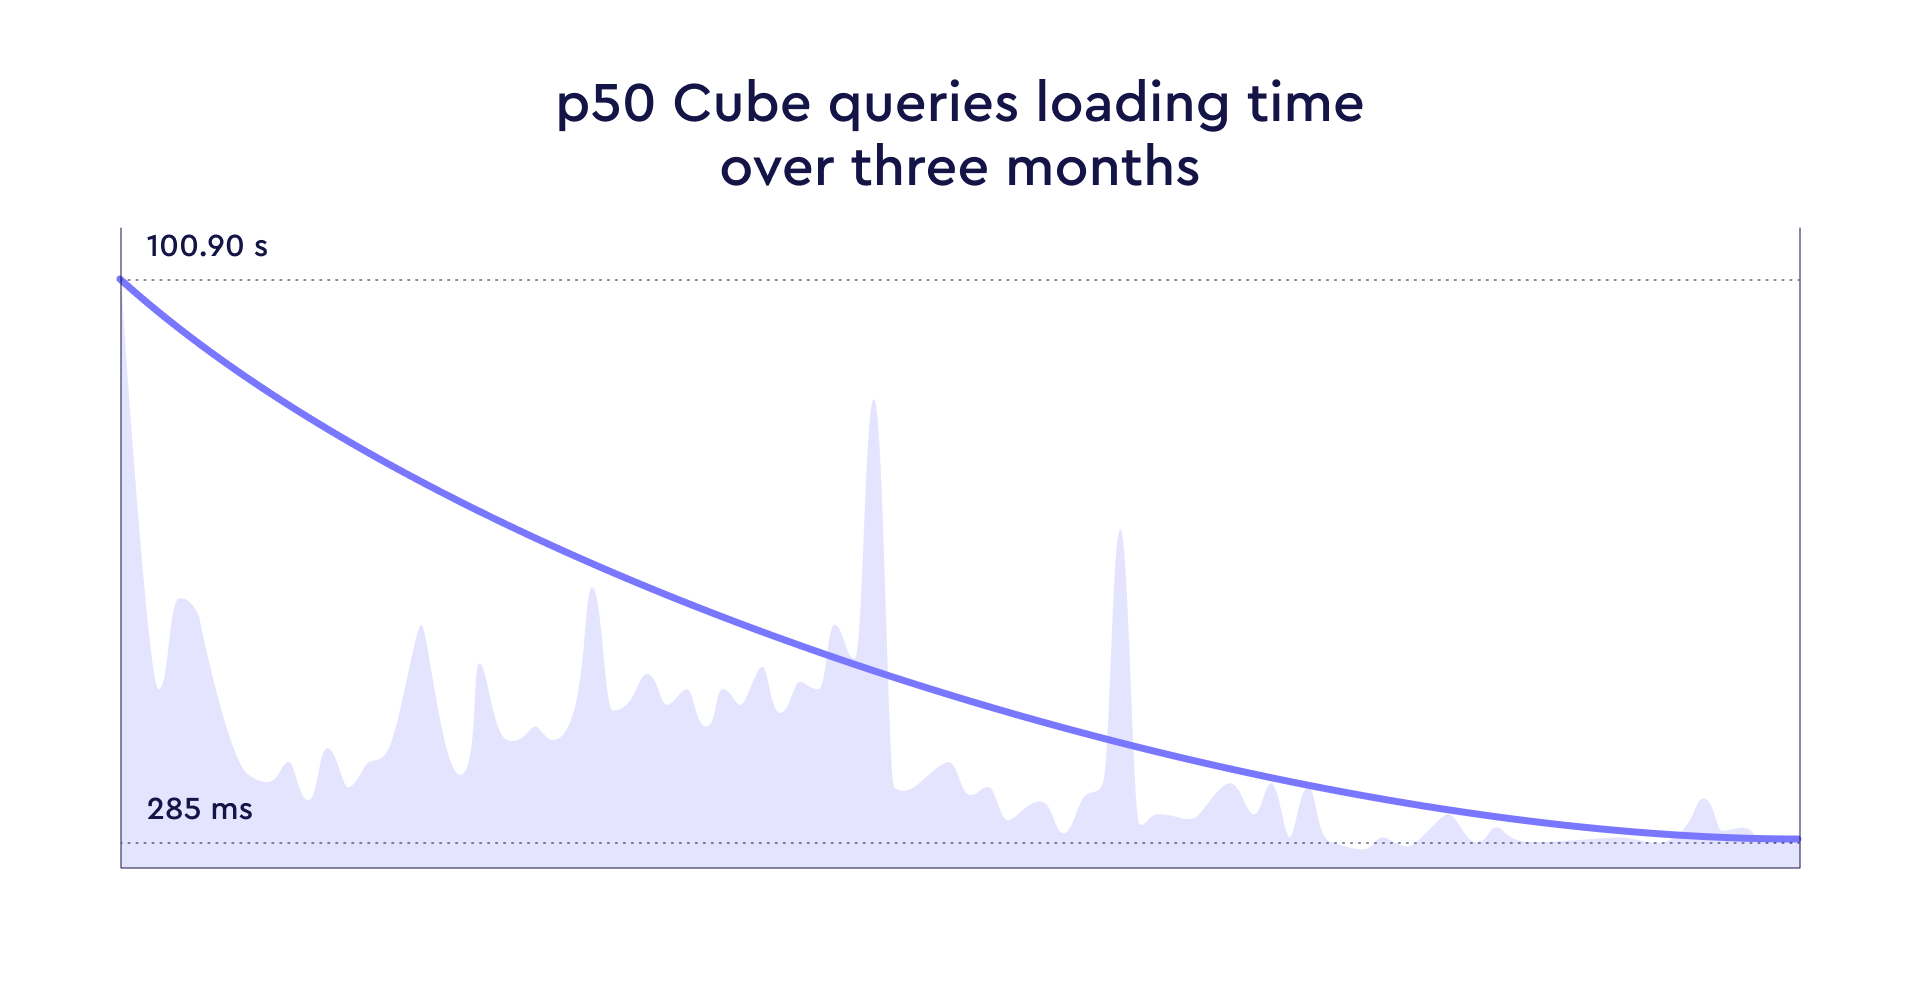 Figure 2: Queries loading time